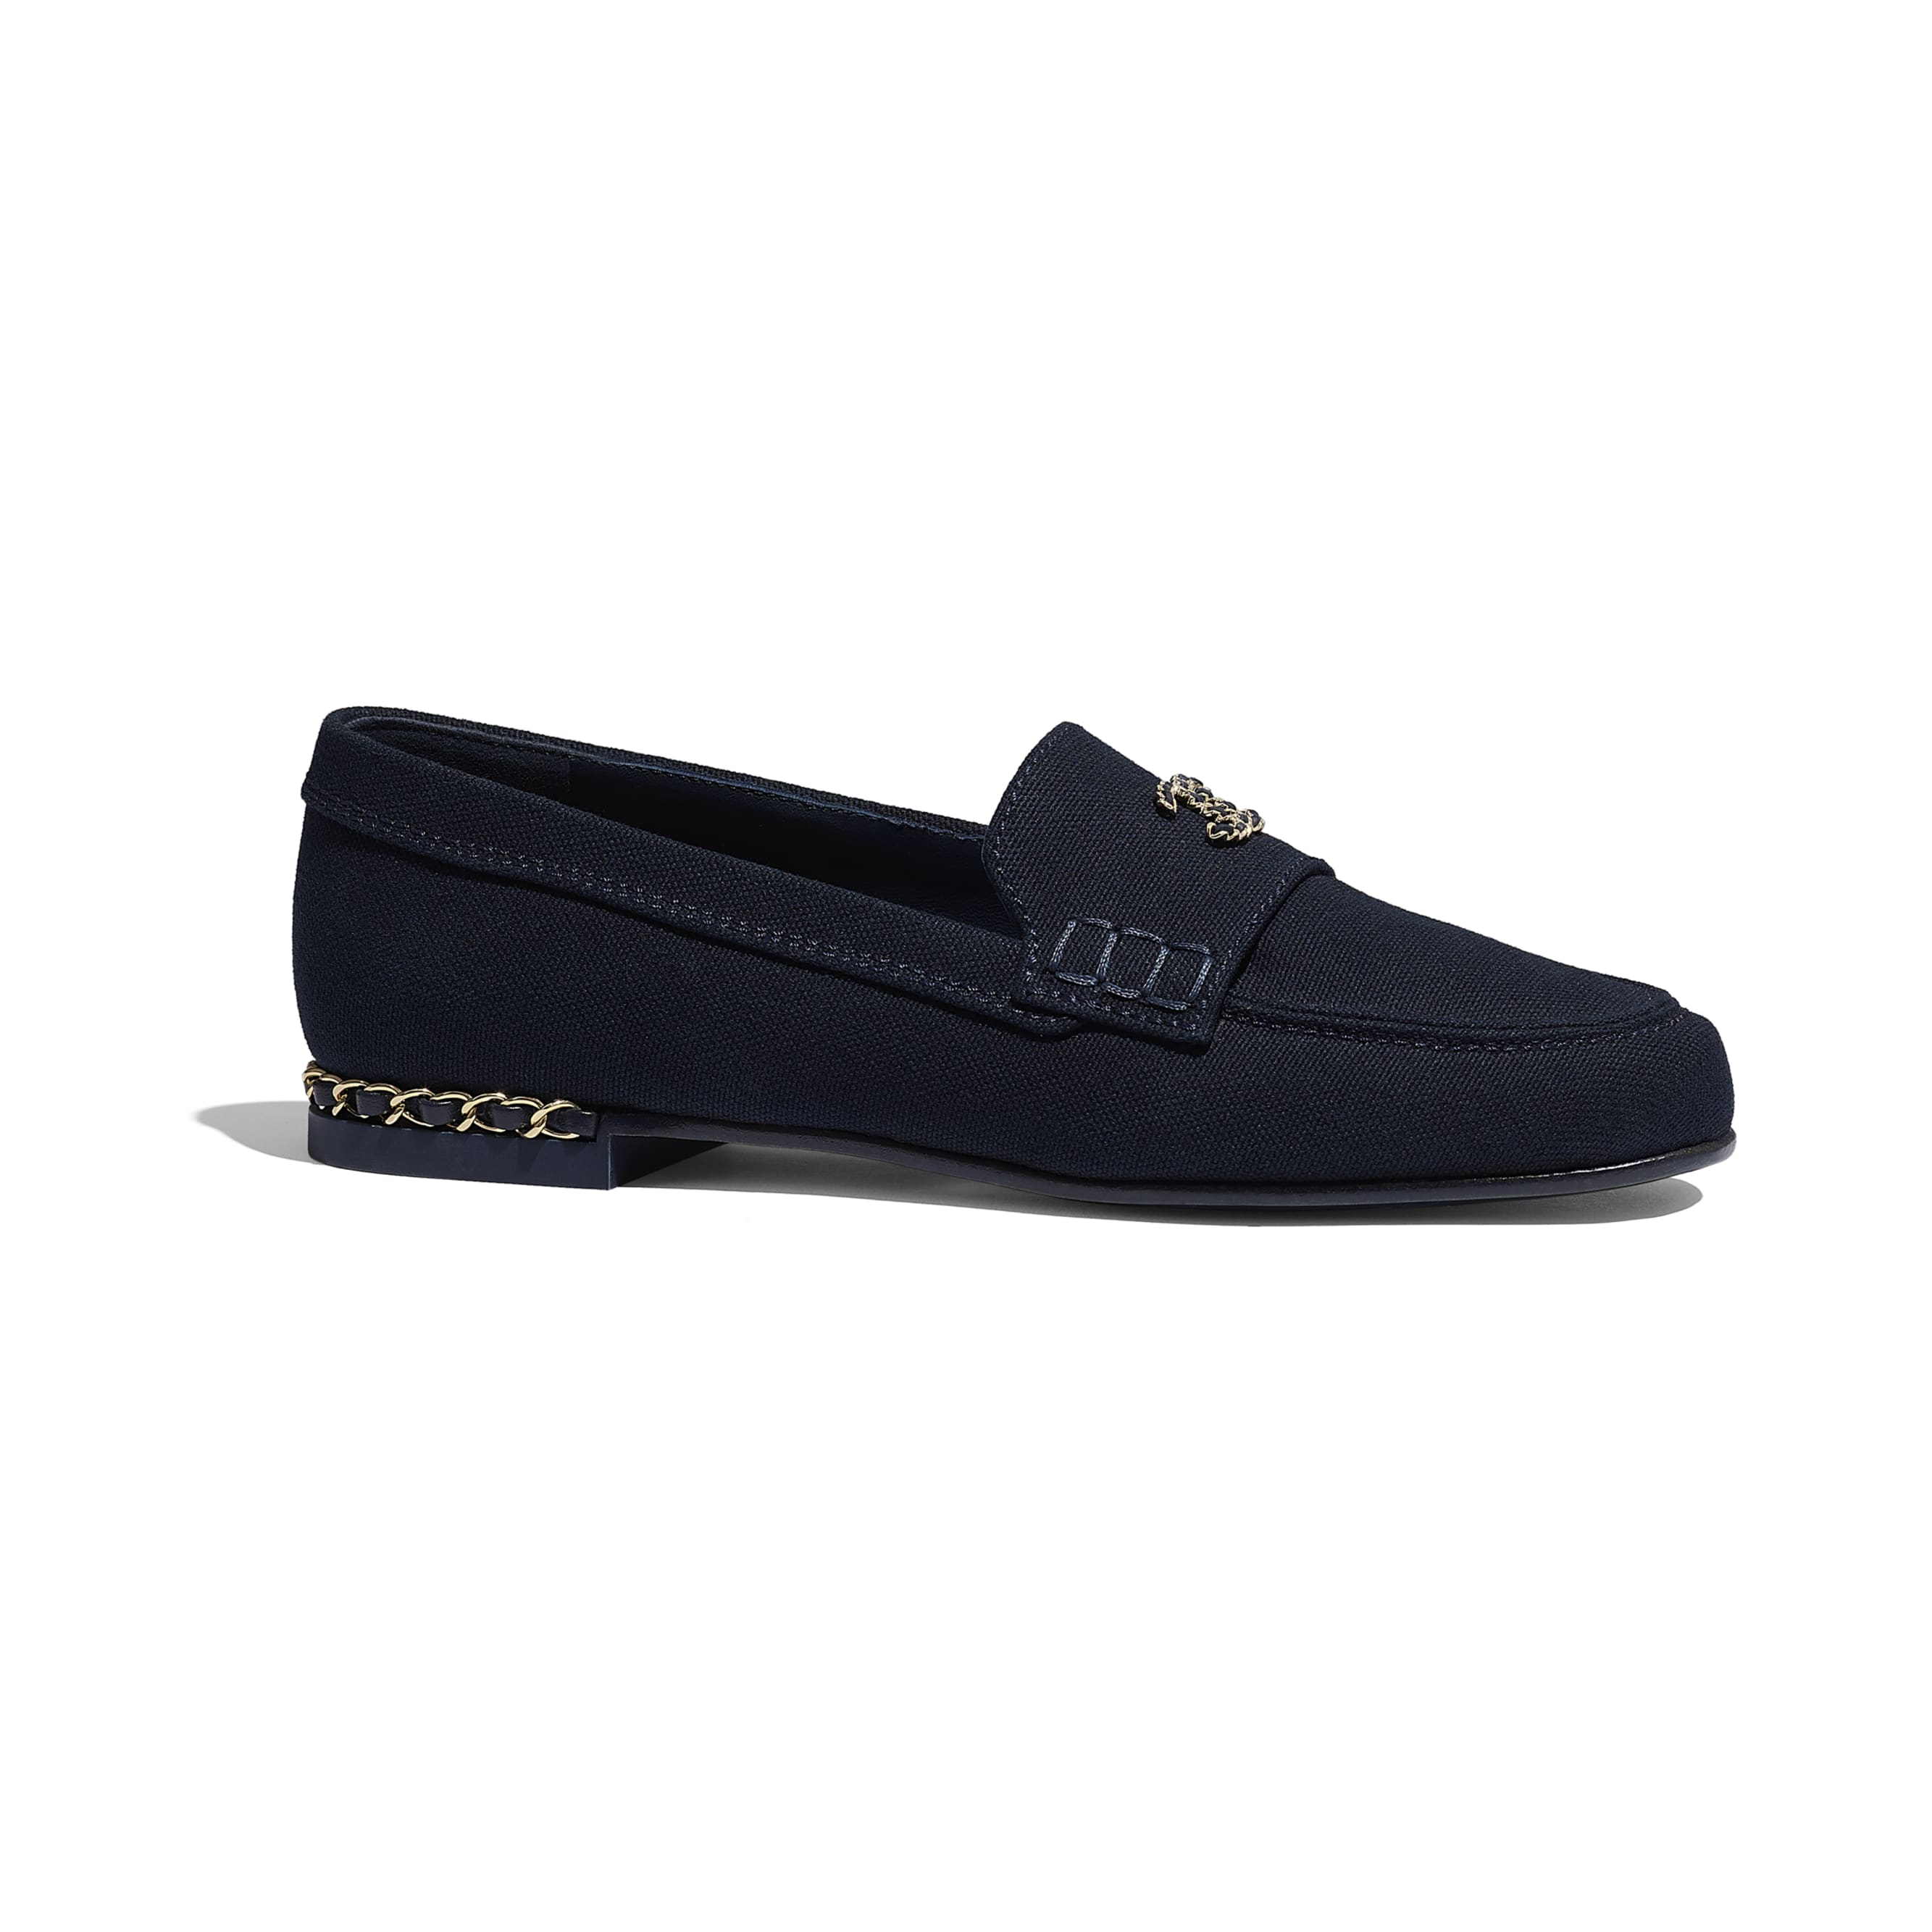 Loafers - Navy Blue - Cotton Canvas & Lambskin - CHANEL - Default view - see standard sized version